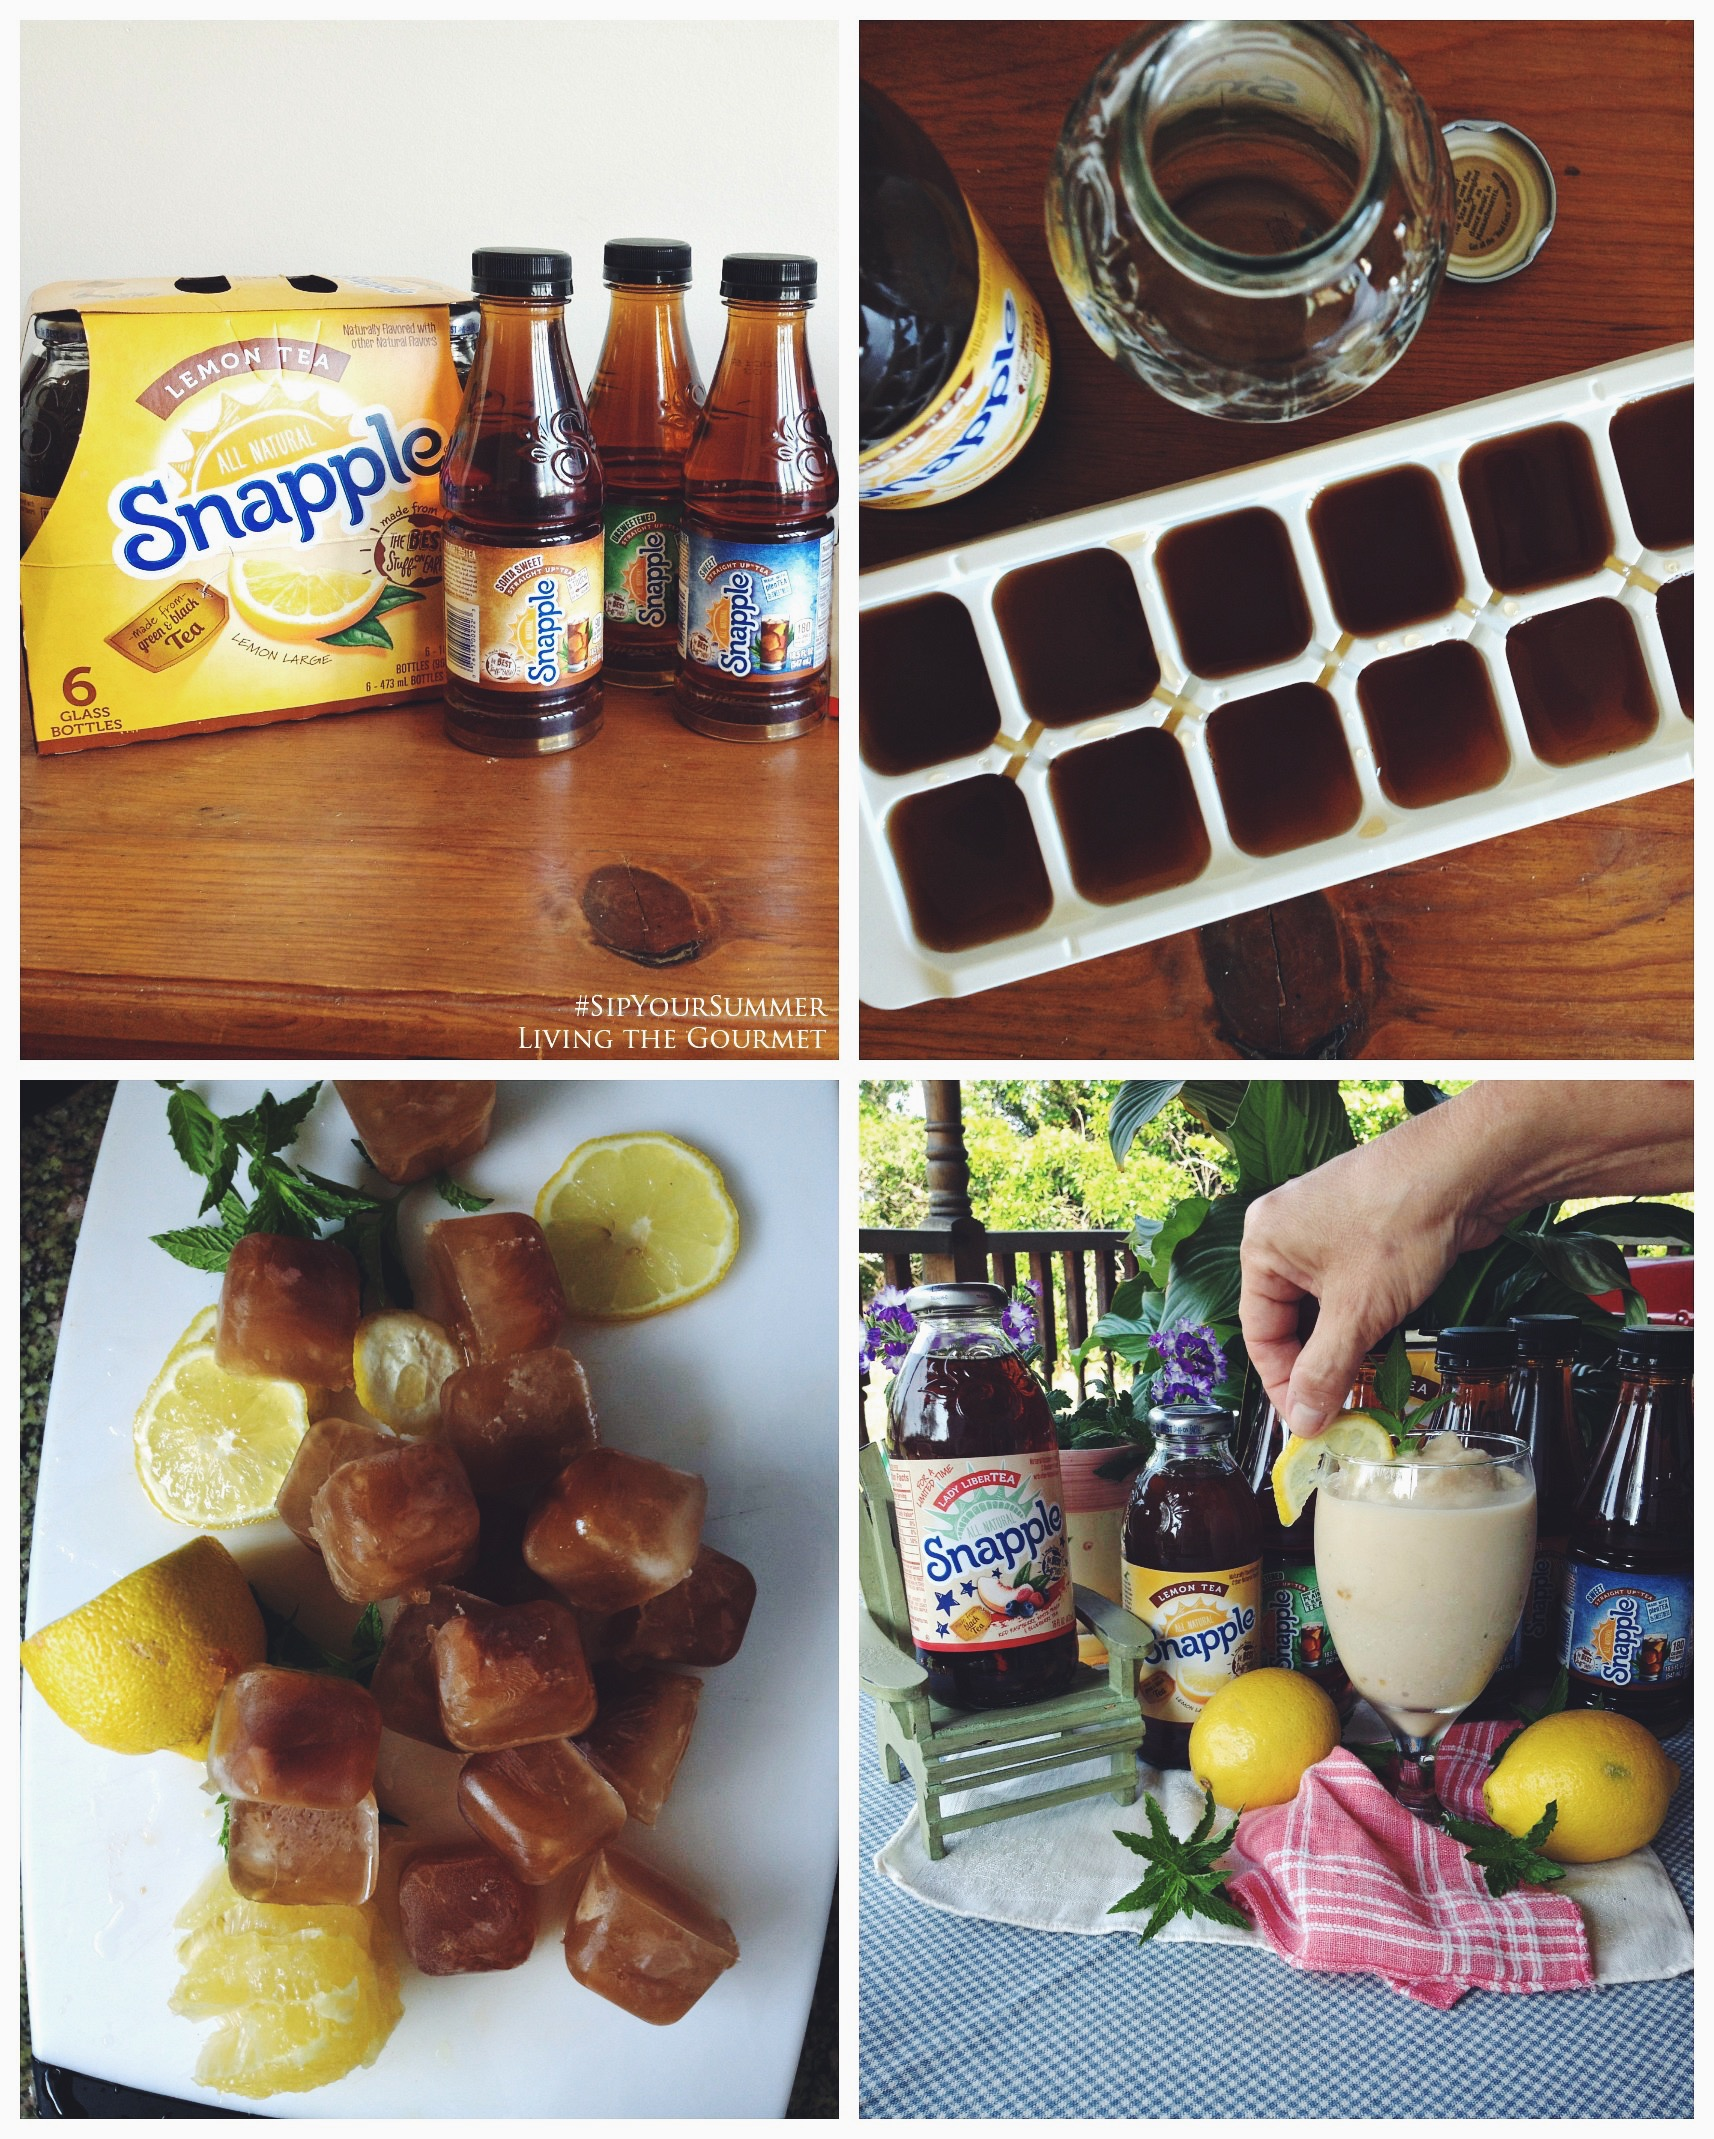 Living the Gourmet: Snapple Lemon Slushy | #SipYourSummer